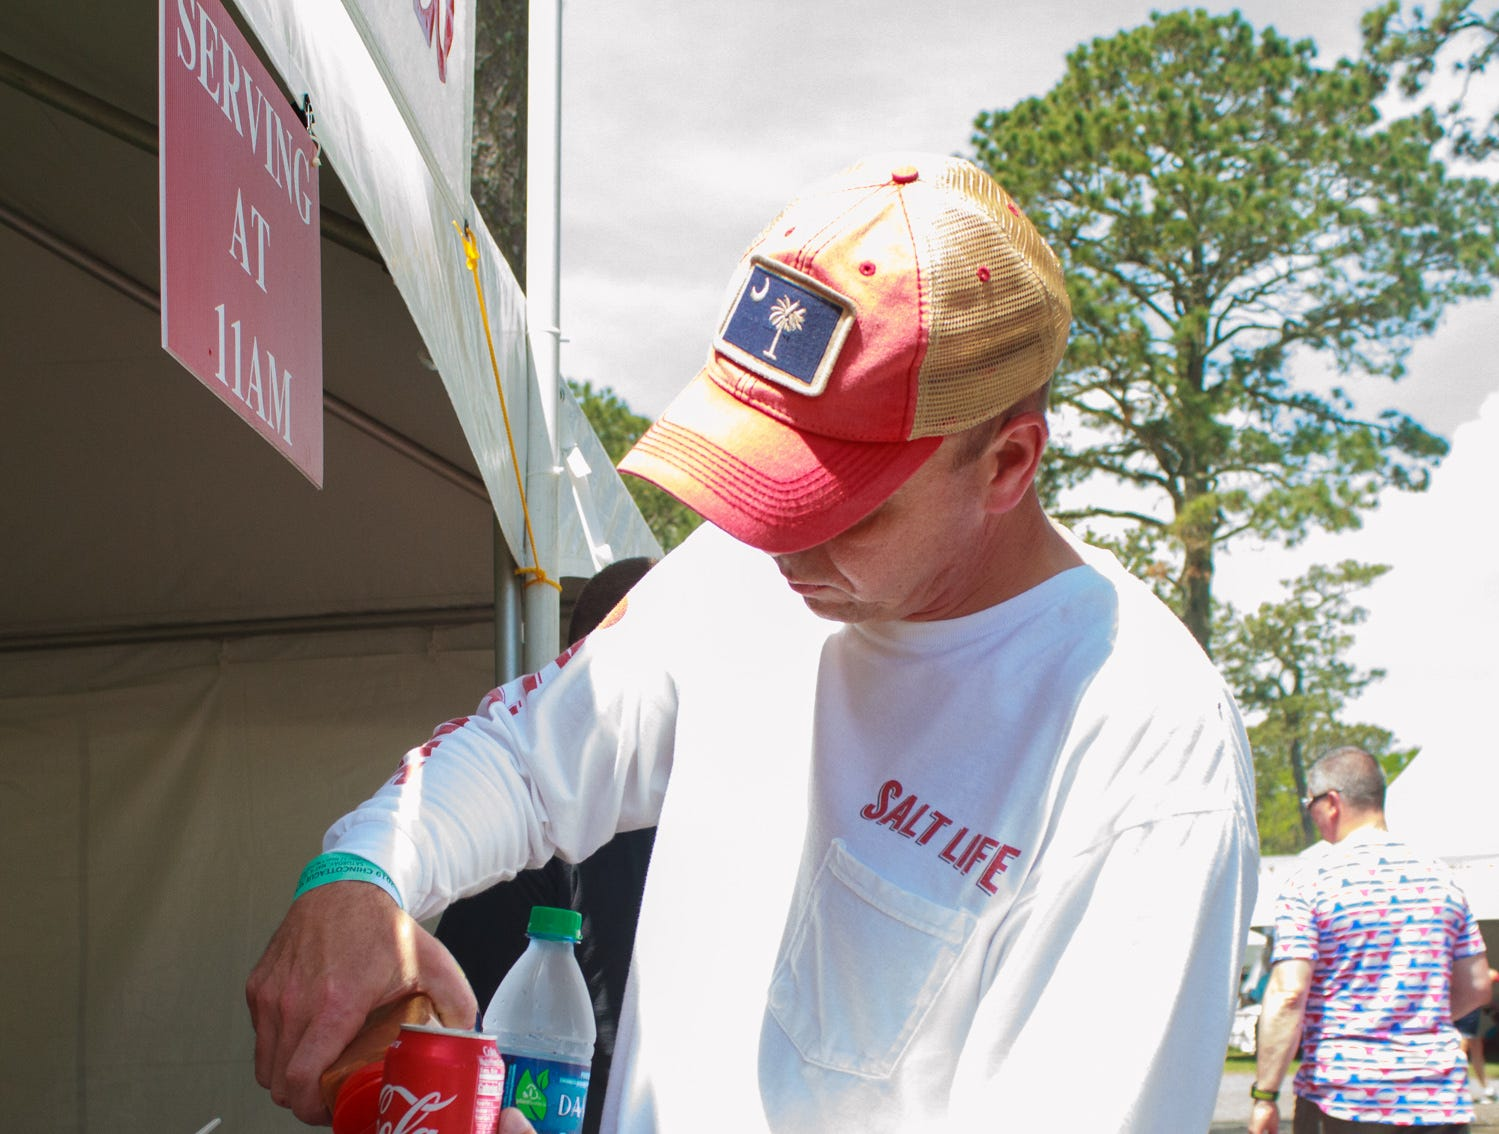 James Sparks prepares a cup of Old Bay seasoning to sit down and eat with on Saturday, May 4, 2019 at the Chincoteague Seafood Festival in Chincoteague, Virginia